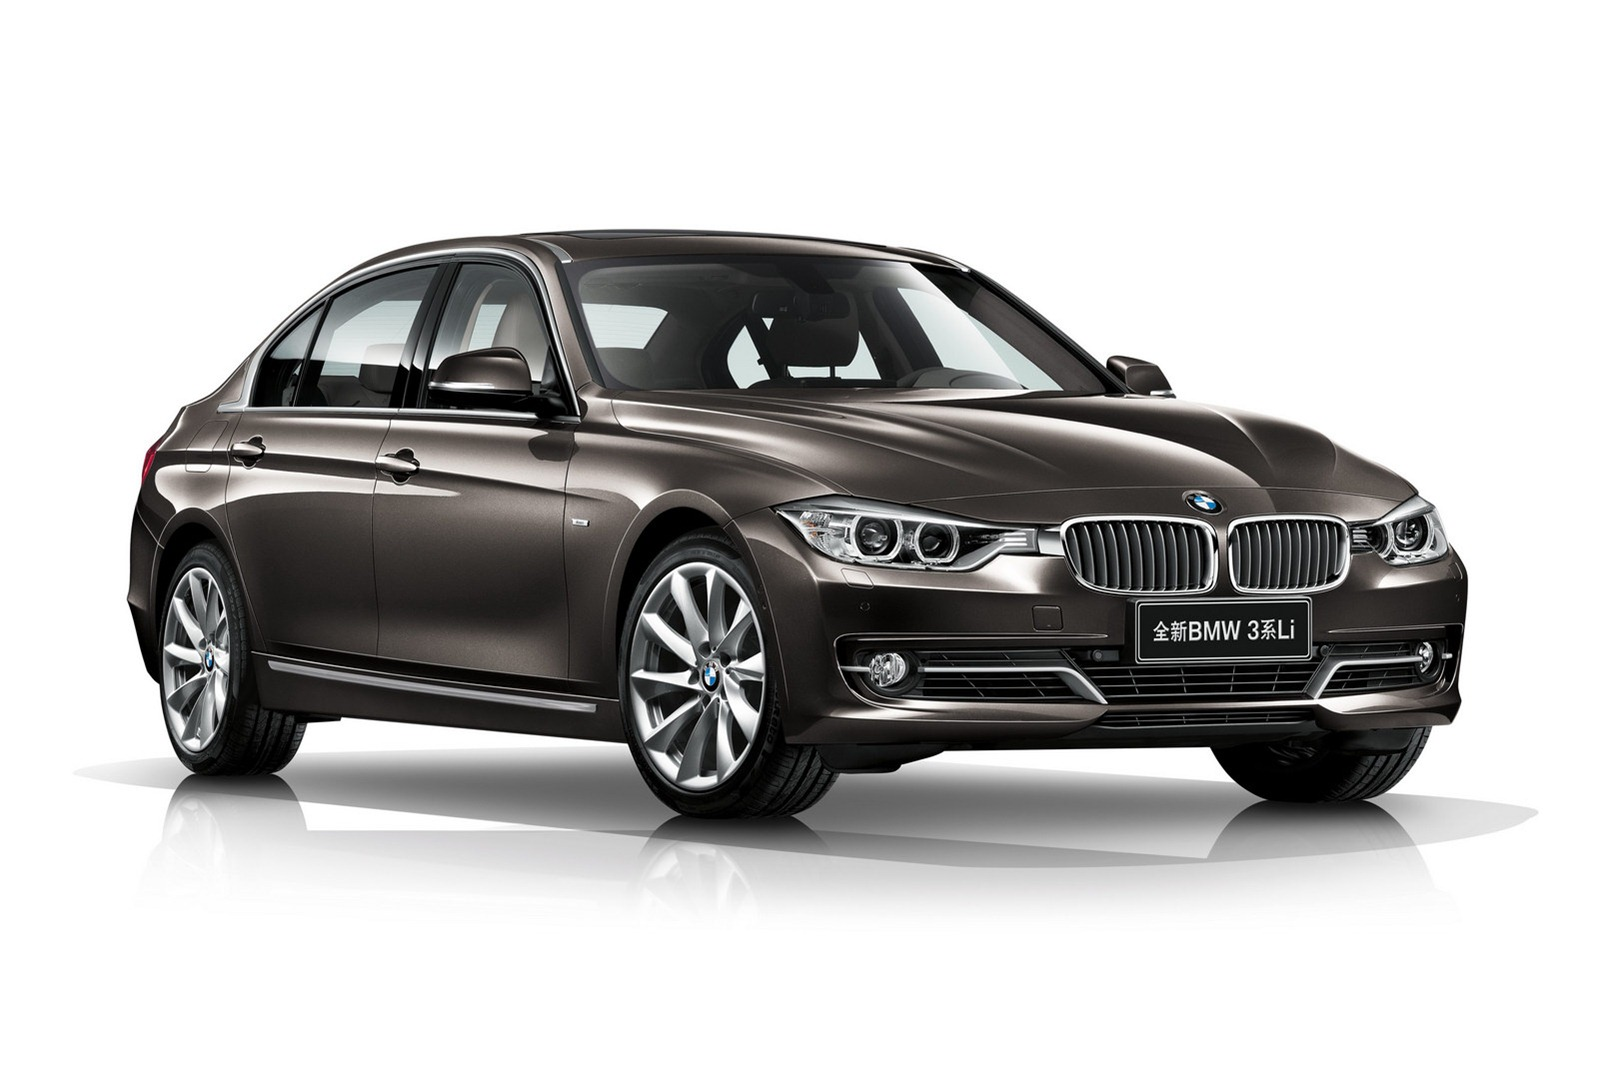 the bmw 3 series long wheelbase ready for beijing auto show autoevolution. Black Bedroom Furniture Sets. Home Design Ideas